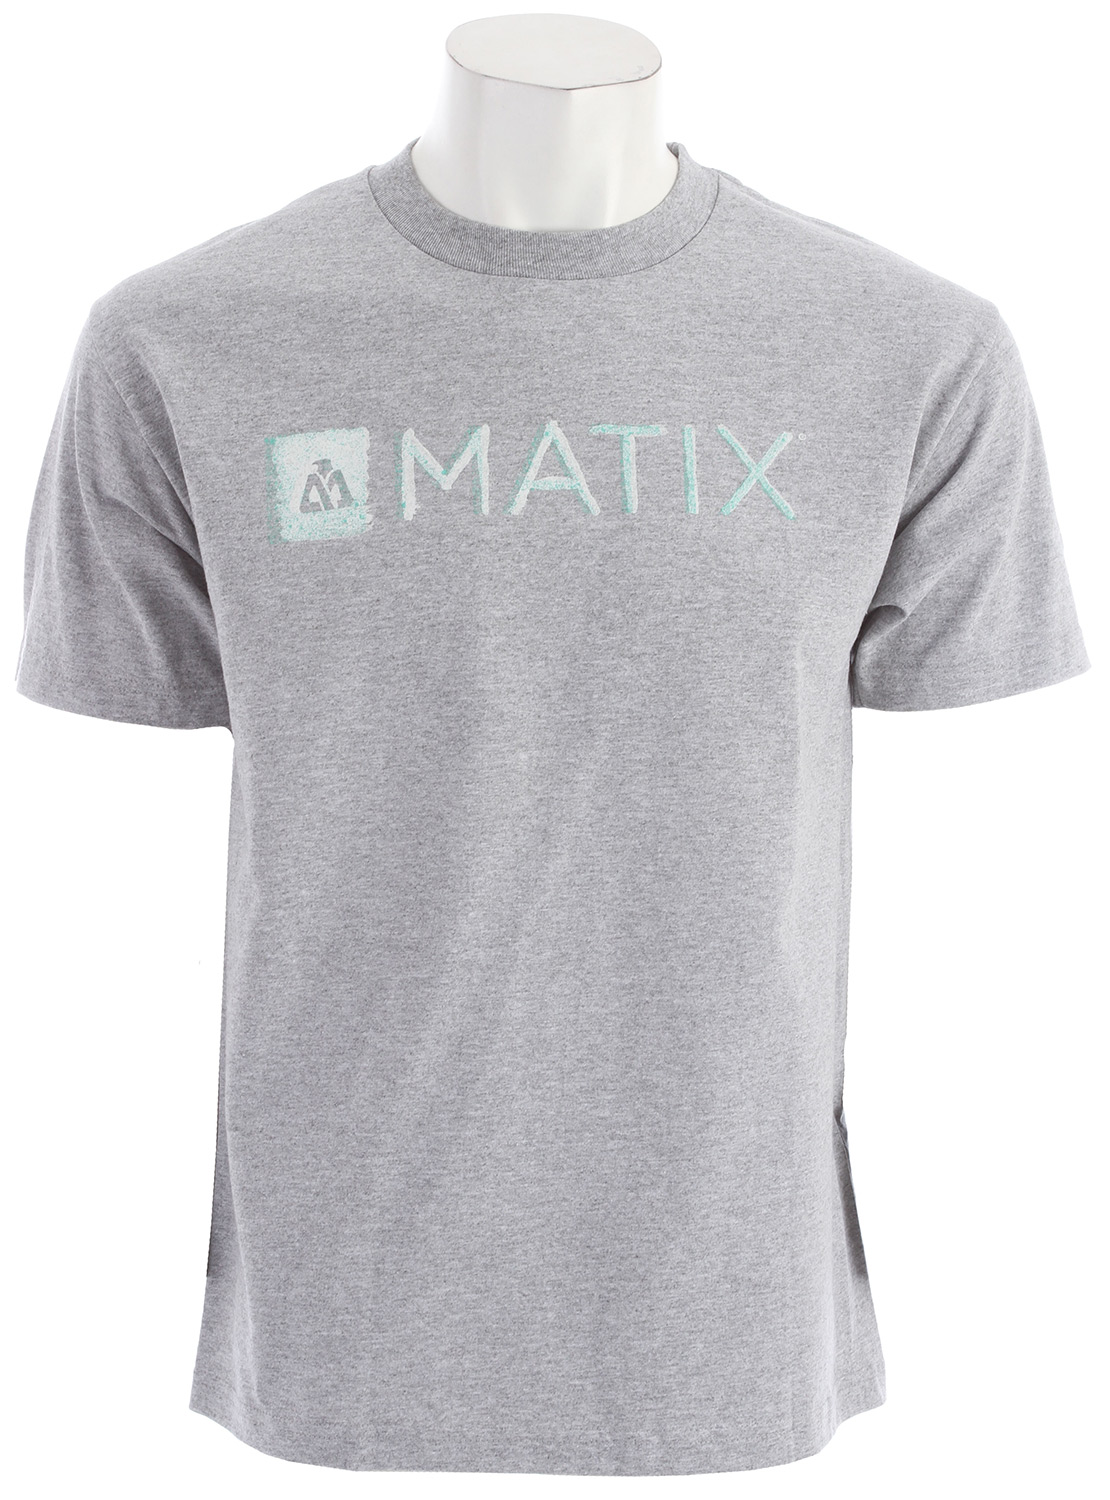 Matix Monolin Ink T-Shirt - $9.95